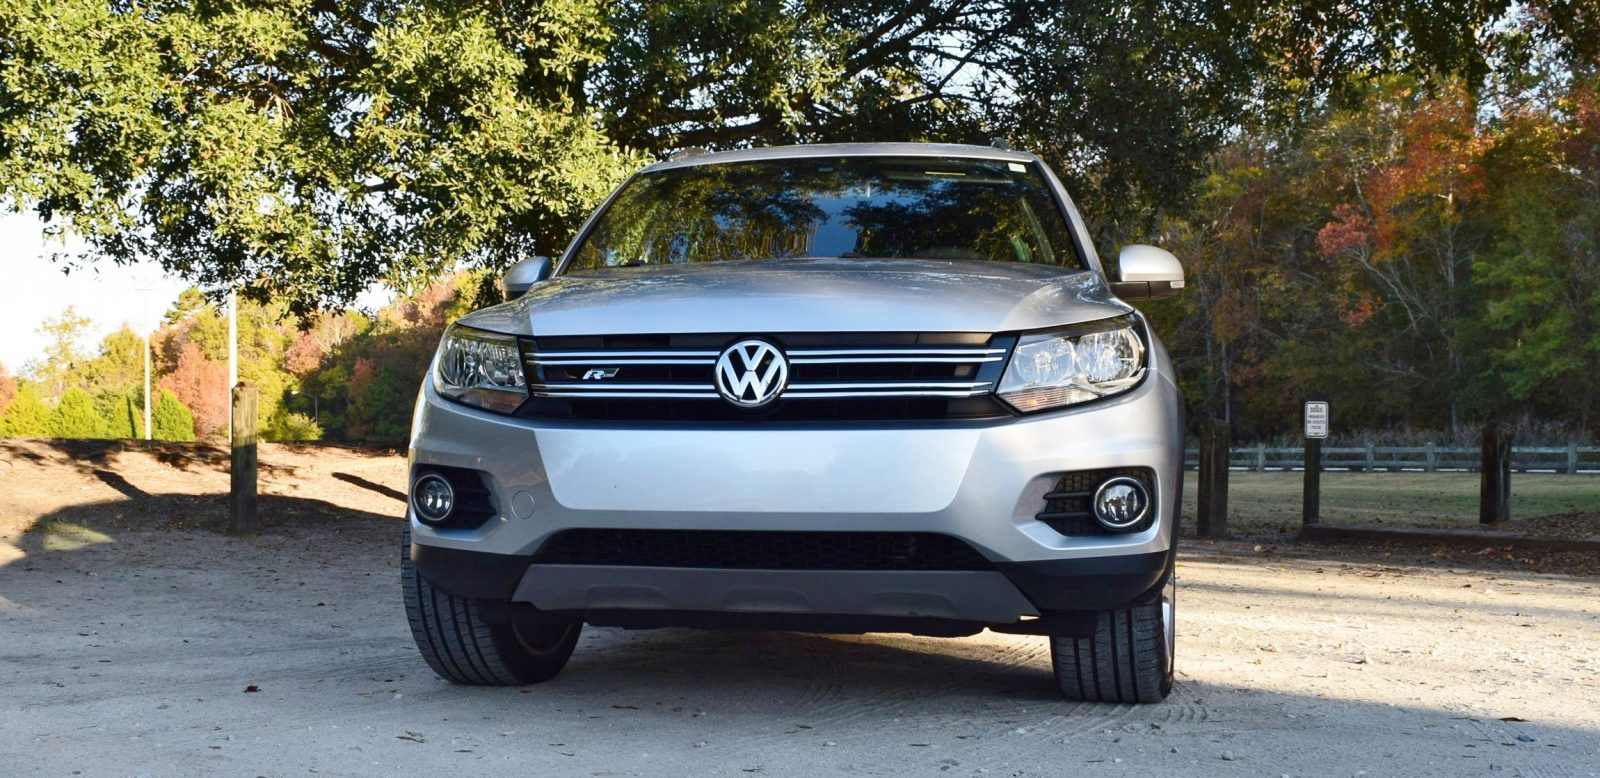 2016 vw tiguan r line review 32. Black Bedroom Furniture Sets. Home Design Ideas